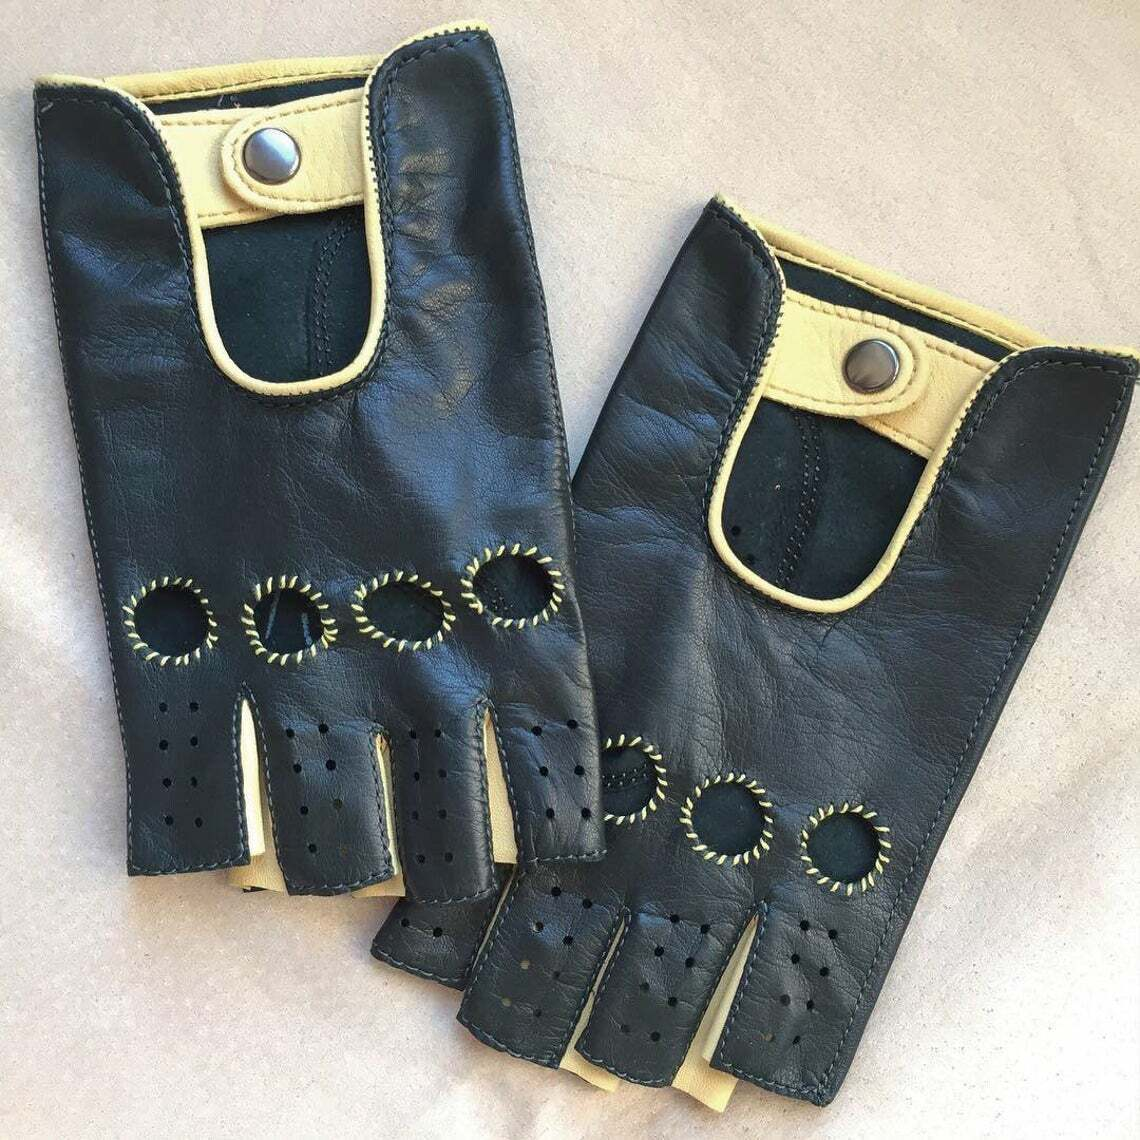 Black & Yellow Driving Cycling Fitness Leather Handmade Gloves